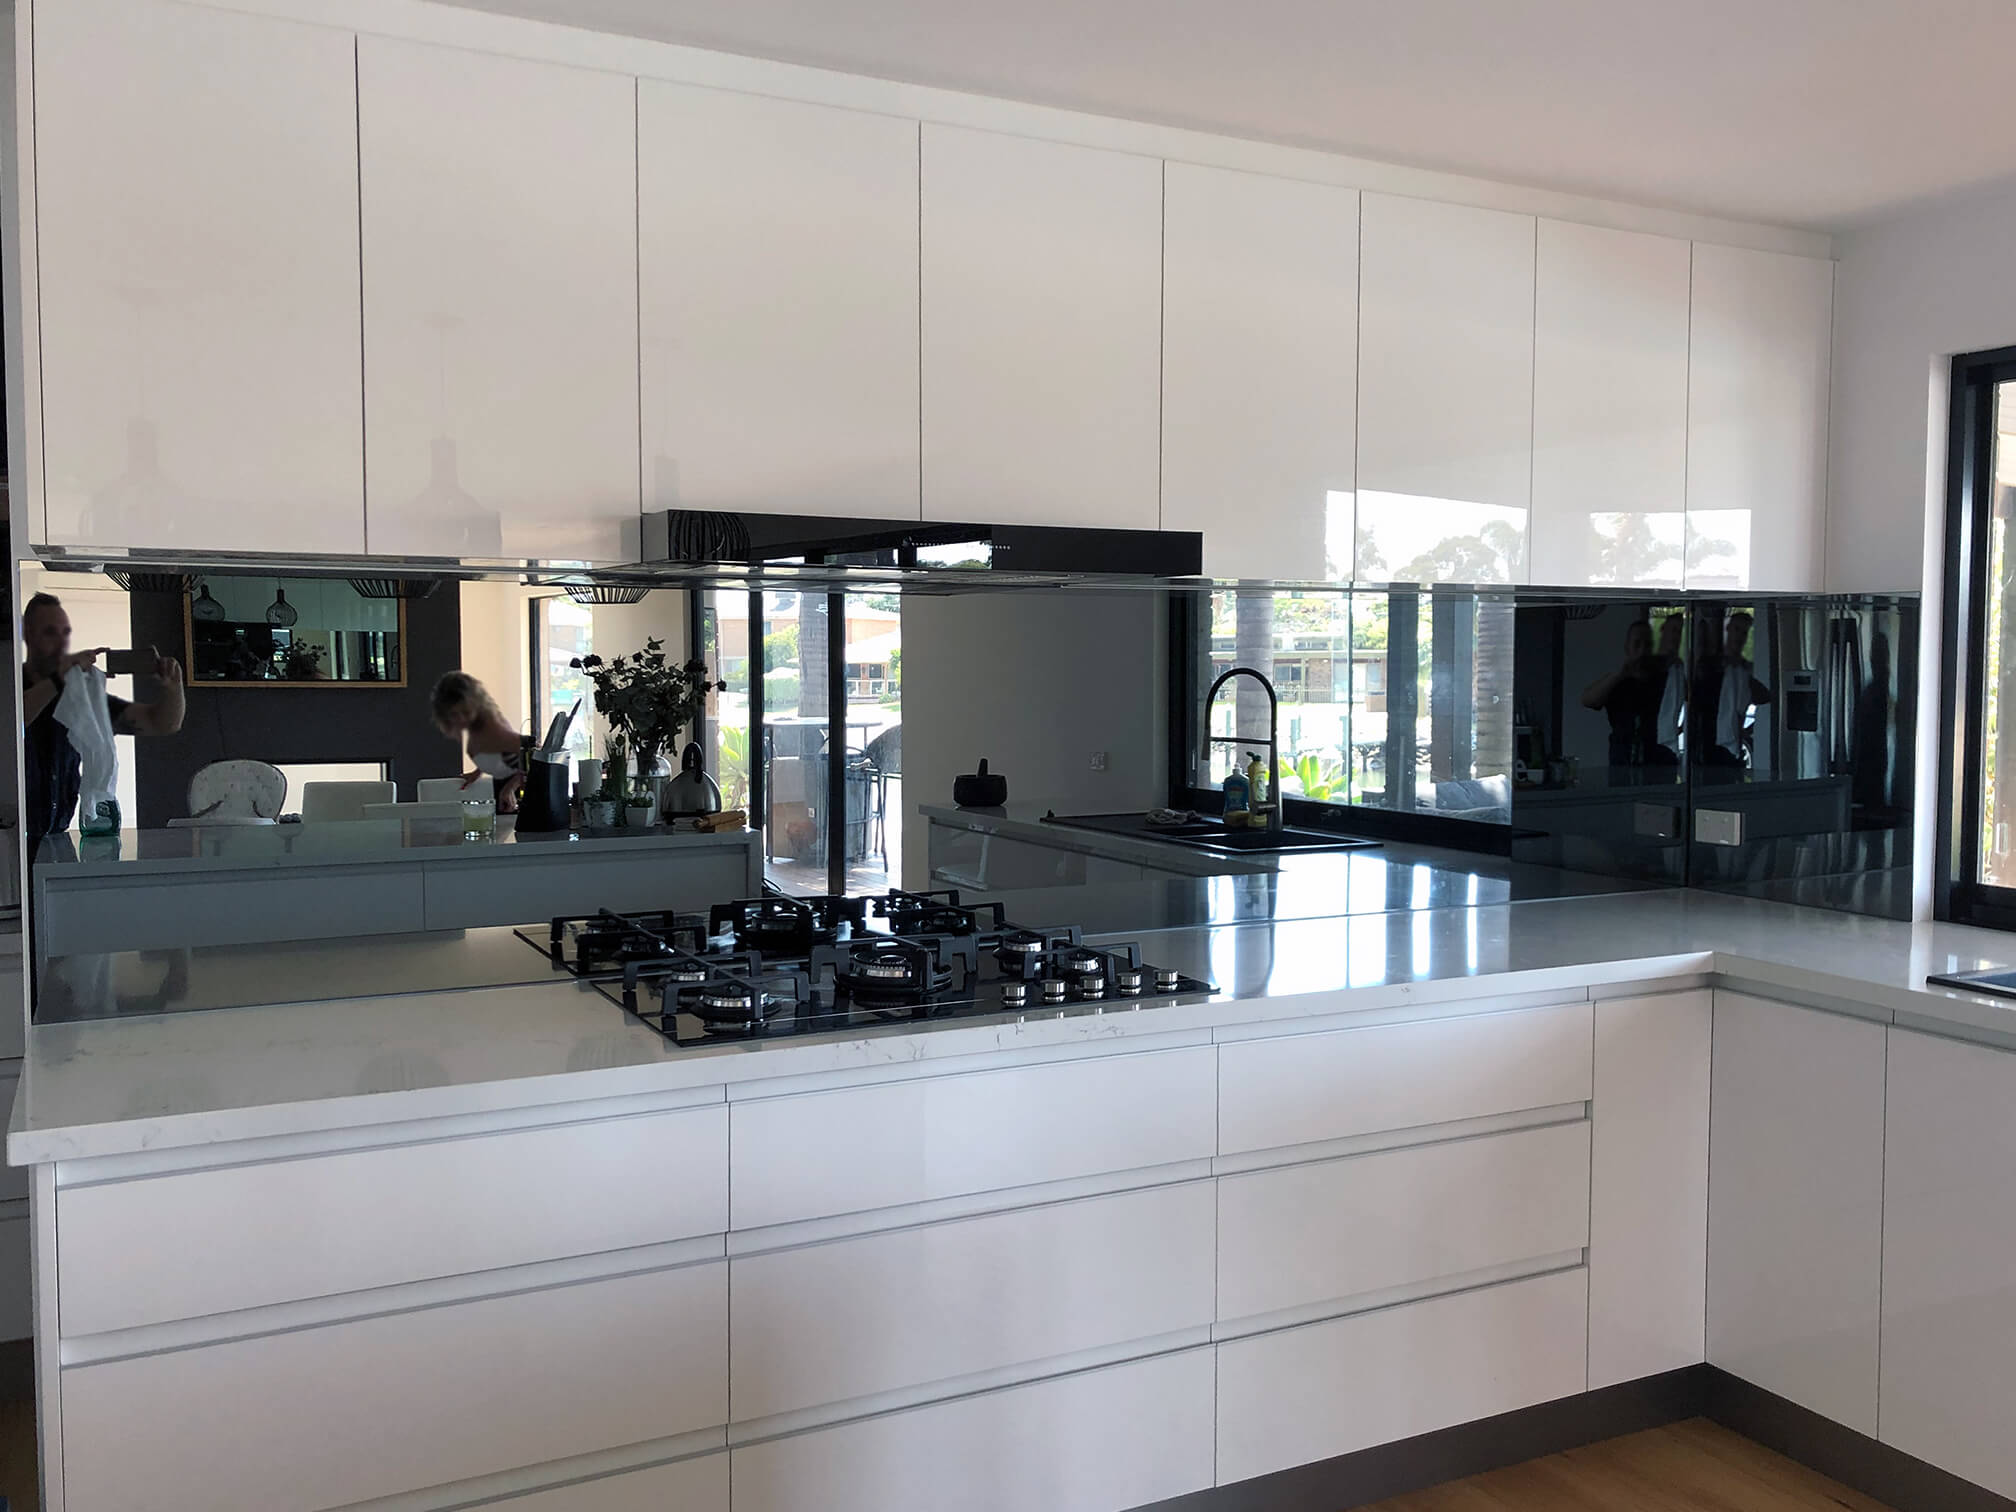 Mirrorstar Splashbacks